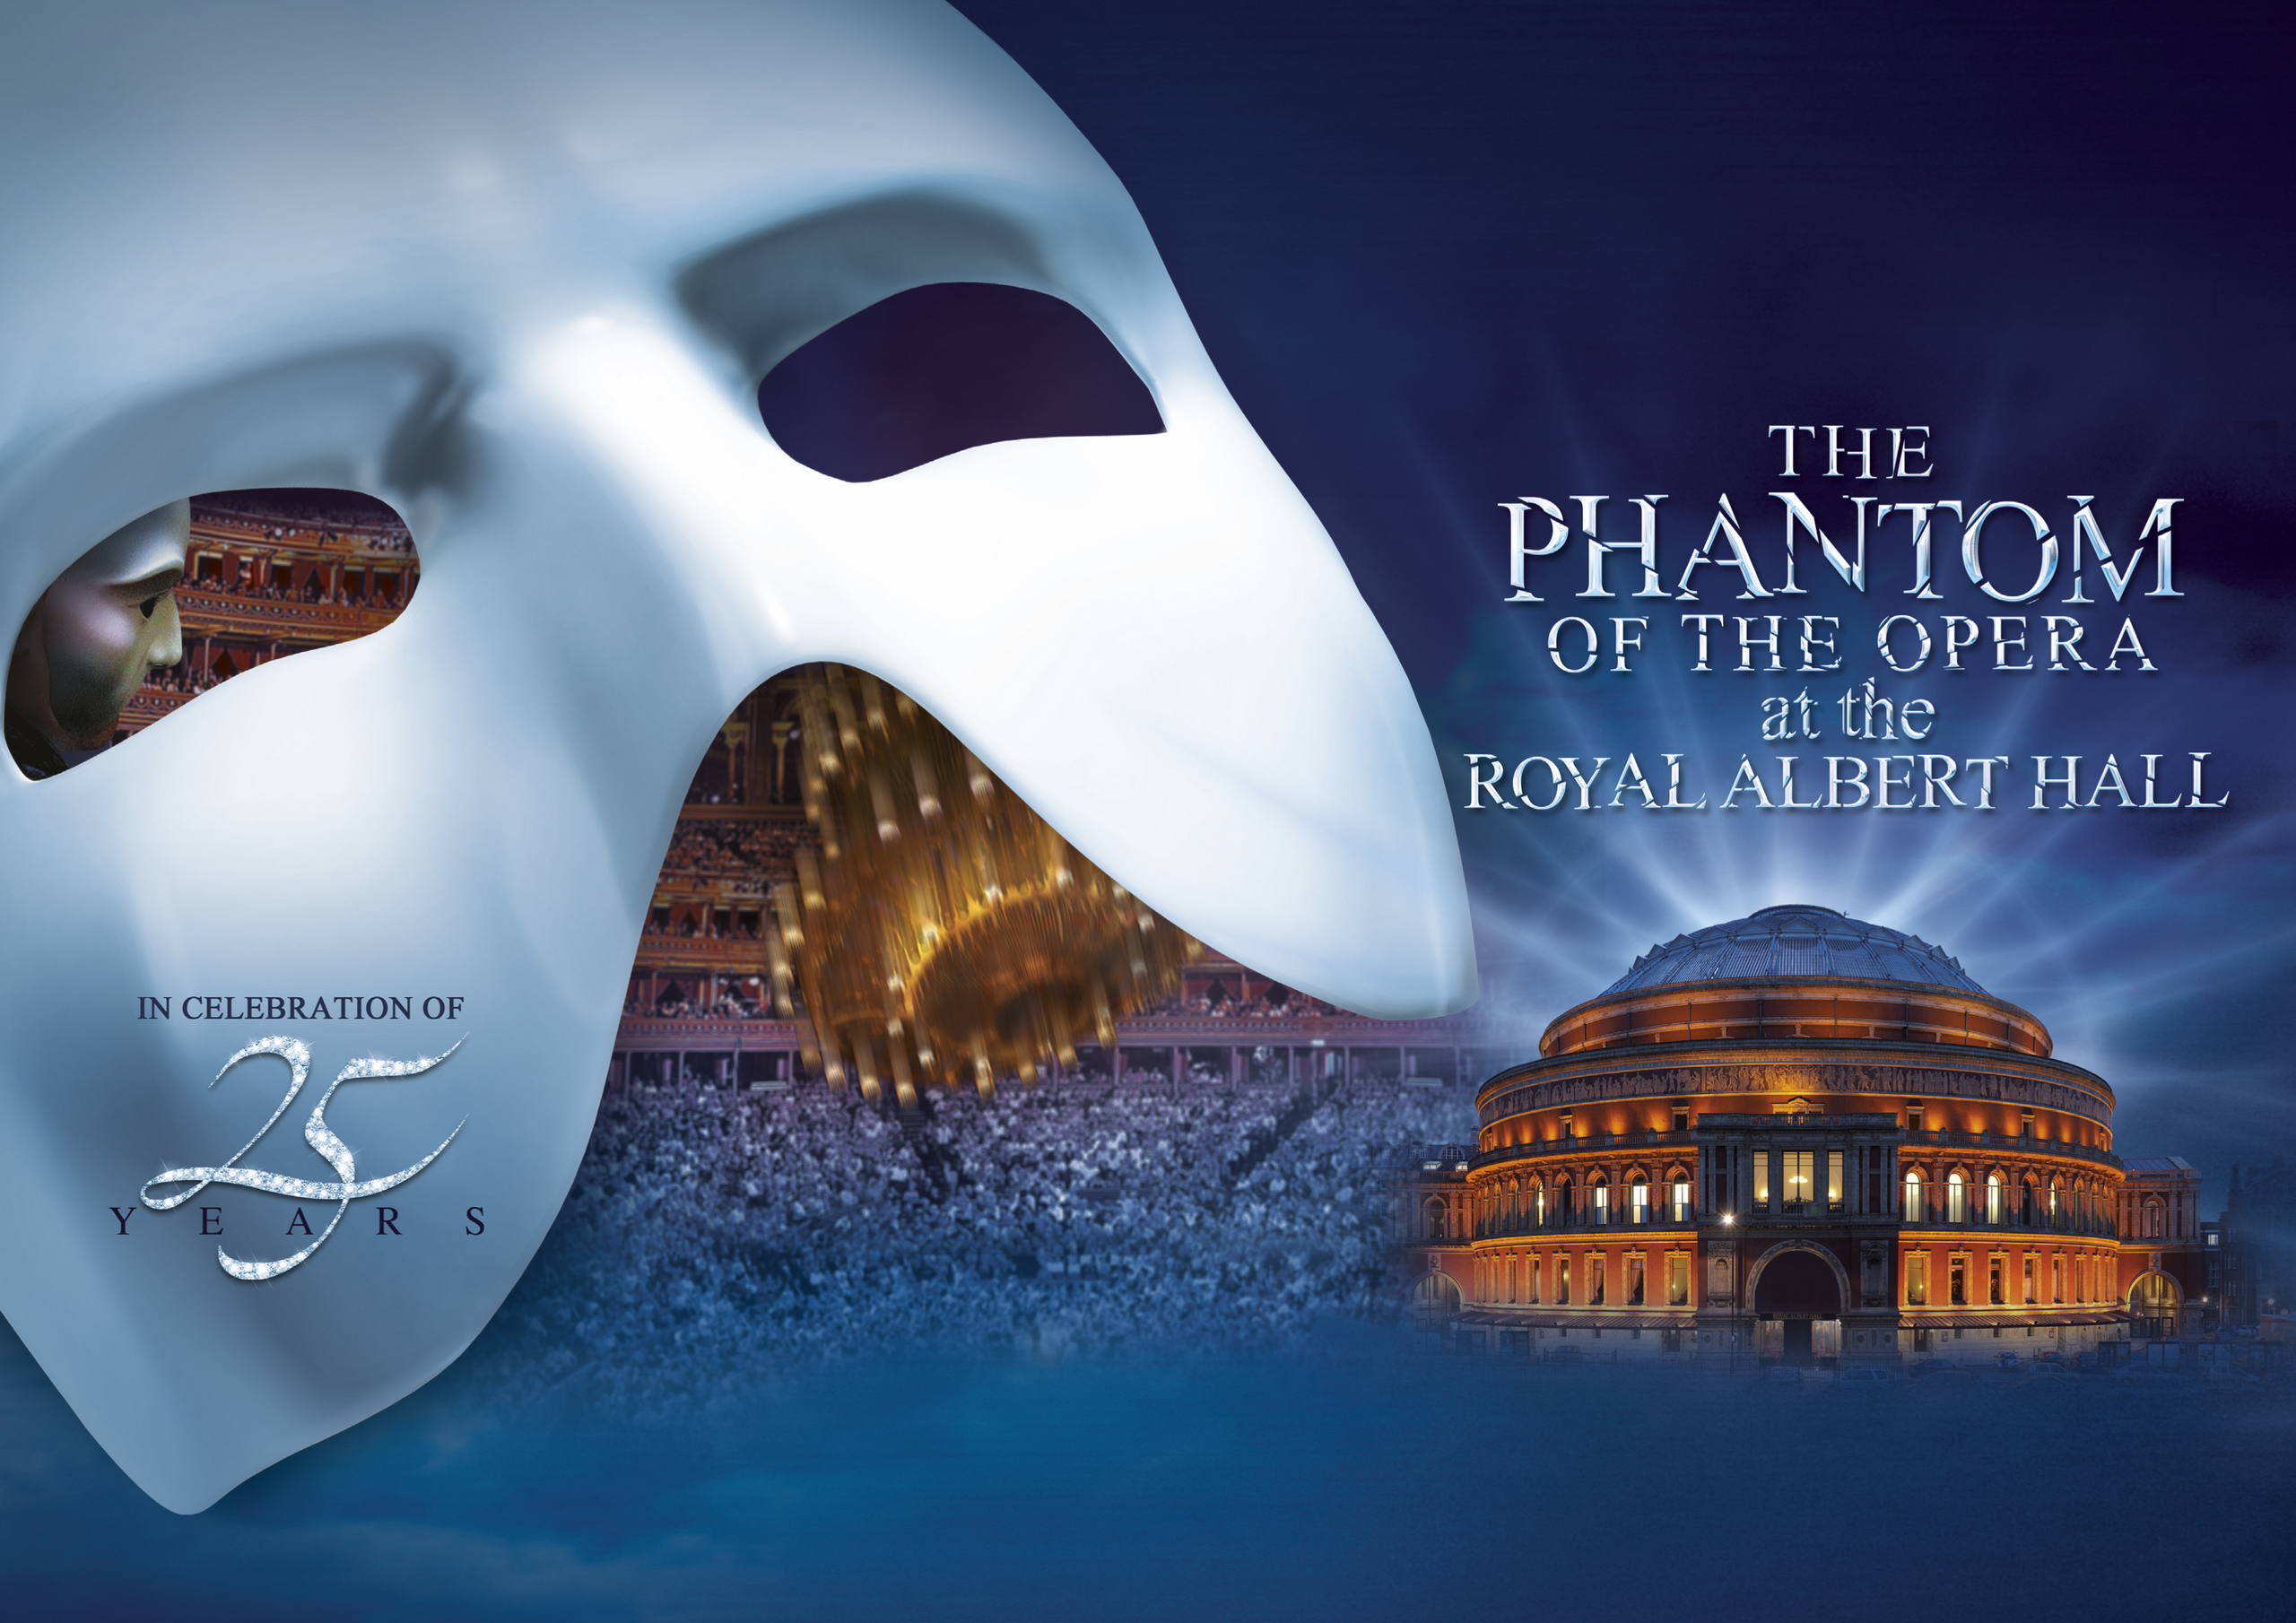 http://images5.fanpop.com/image/photos/30400000/Advertisements-phantom-of-the-opera-london-2012-30432815-2560-1810.jpg